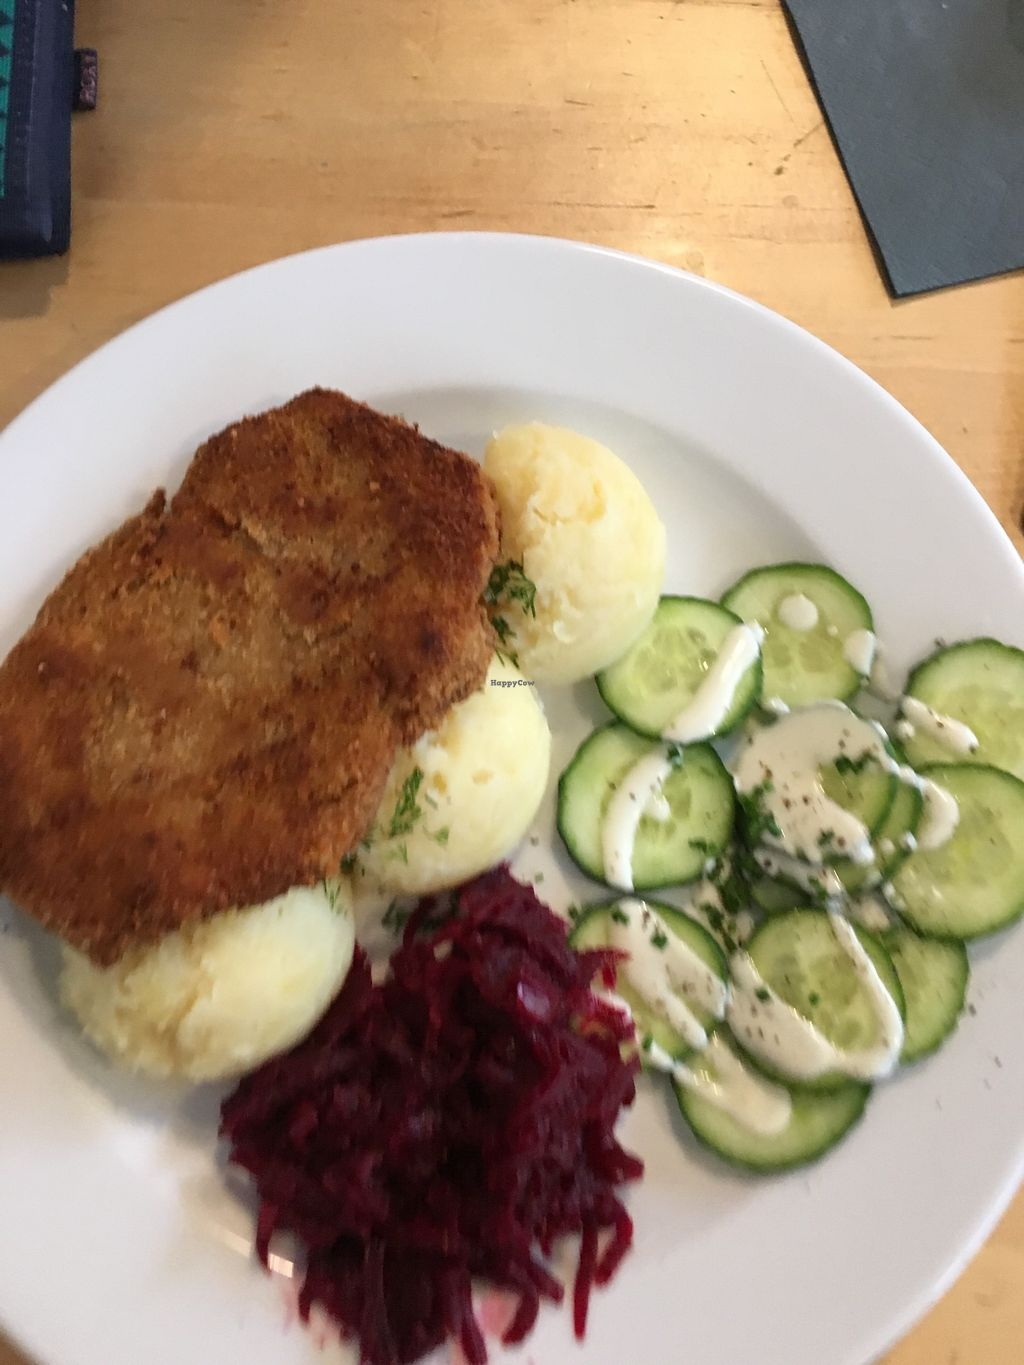 """Photo of Lokal Vegan Bistro  by <a href=""""/members/profile/Kwacha"""">Kwacha</a> <br/>soy cutlet with mashed potatoes and vegan salad <br/> January 17, 2018  - <a href='/contact/abuse/image/55545/347641'>Report</a>"""